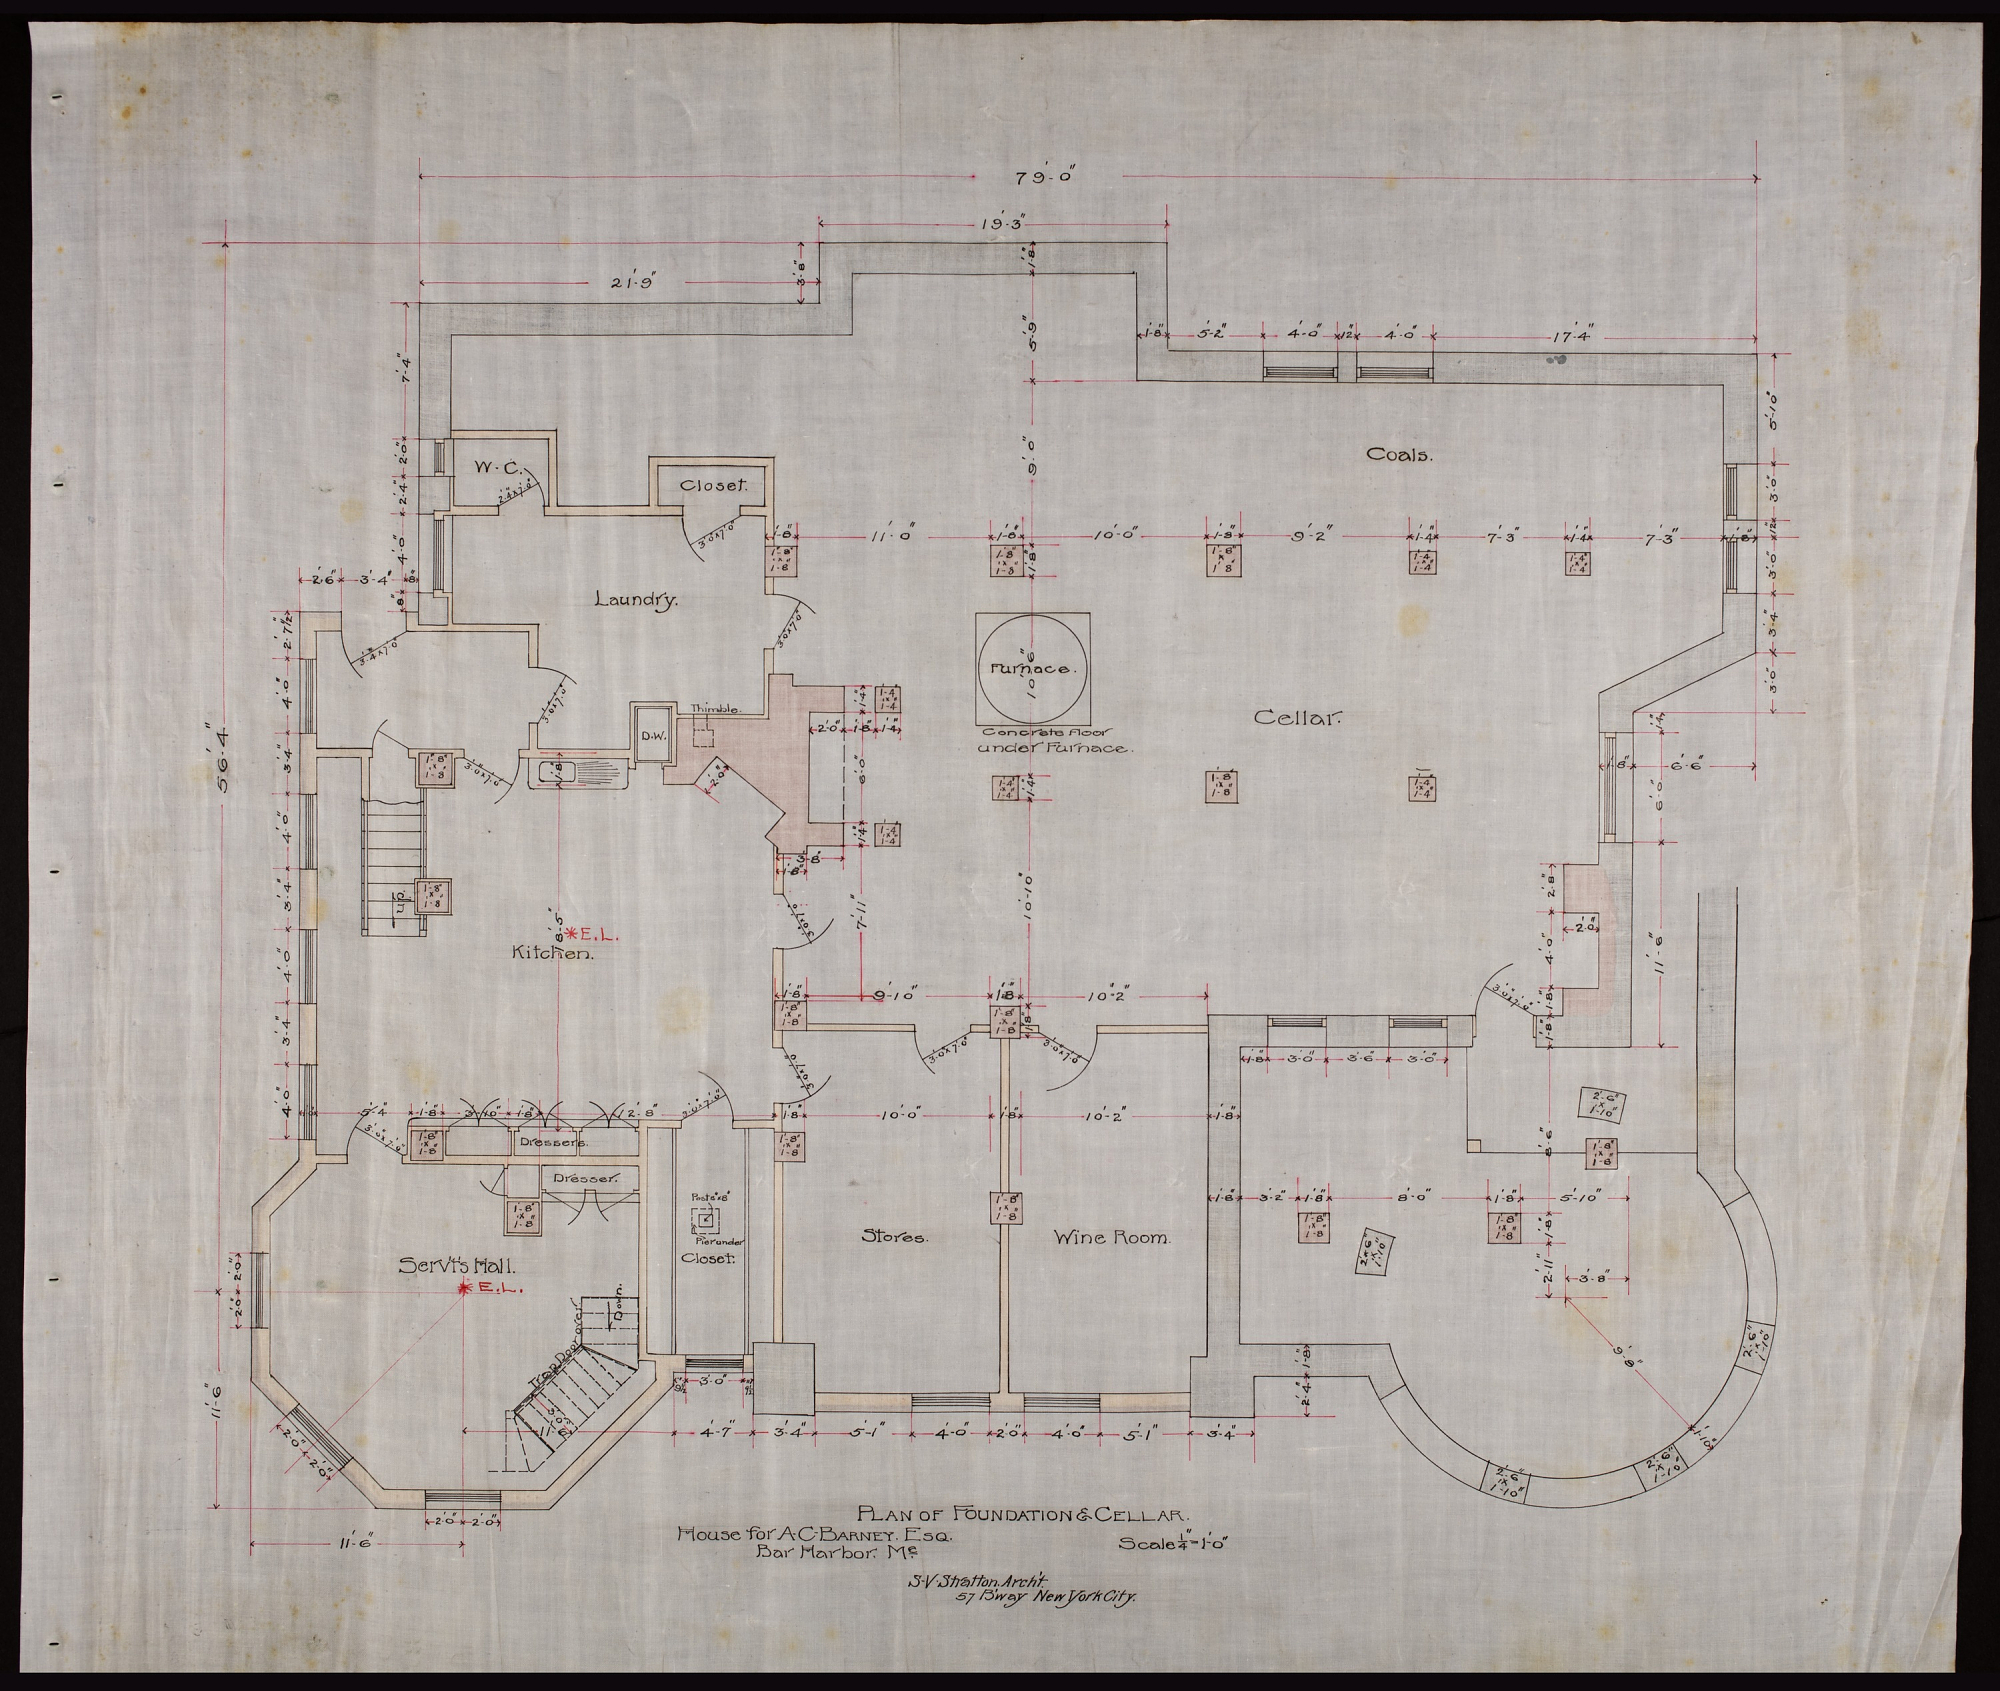 Plan showing servant's hall, kitchen, bathroom, laundry, cellar, stores, coals, and wine room